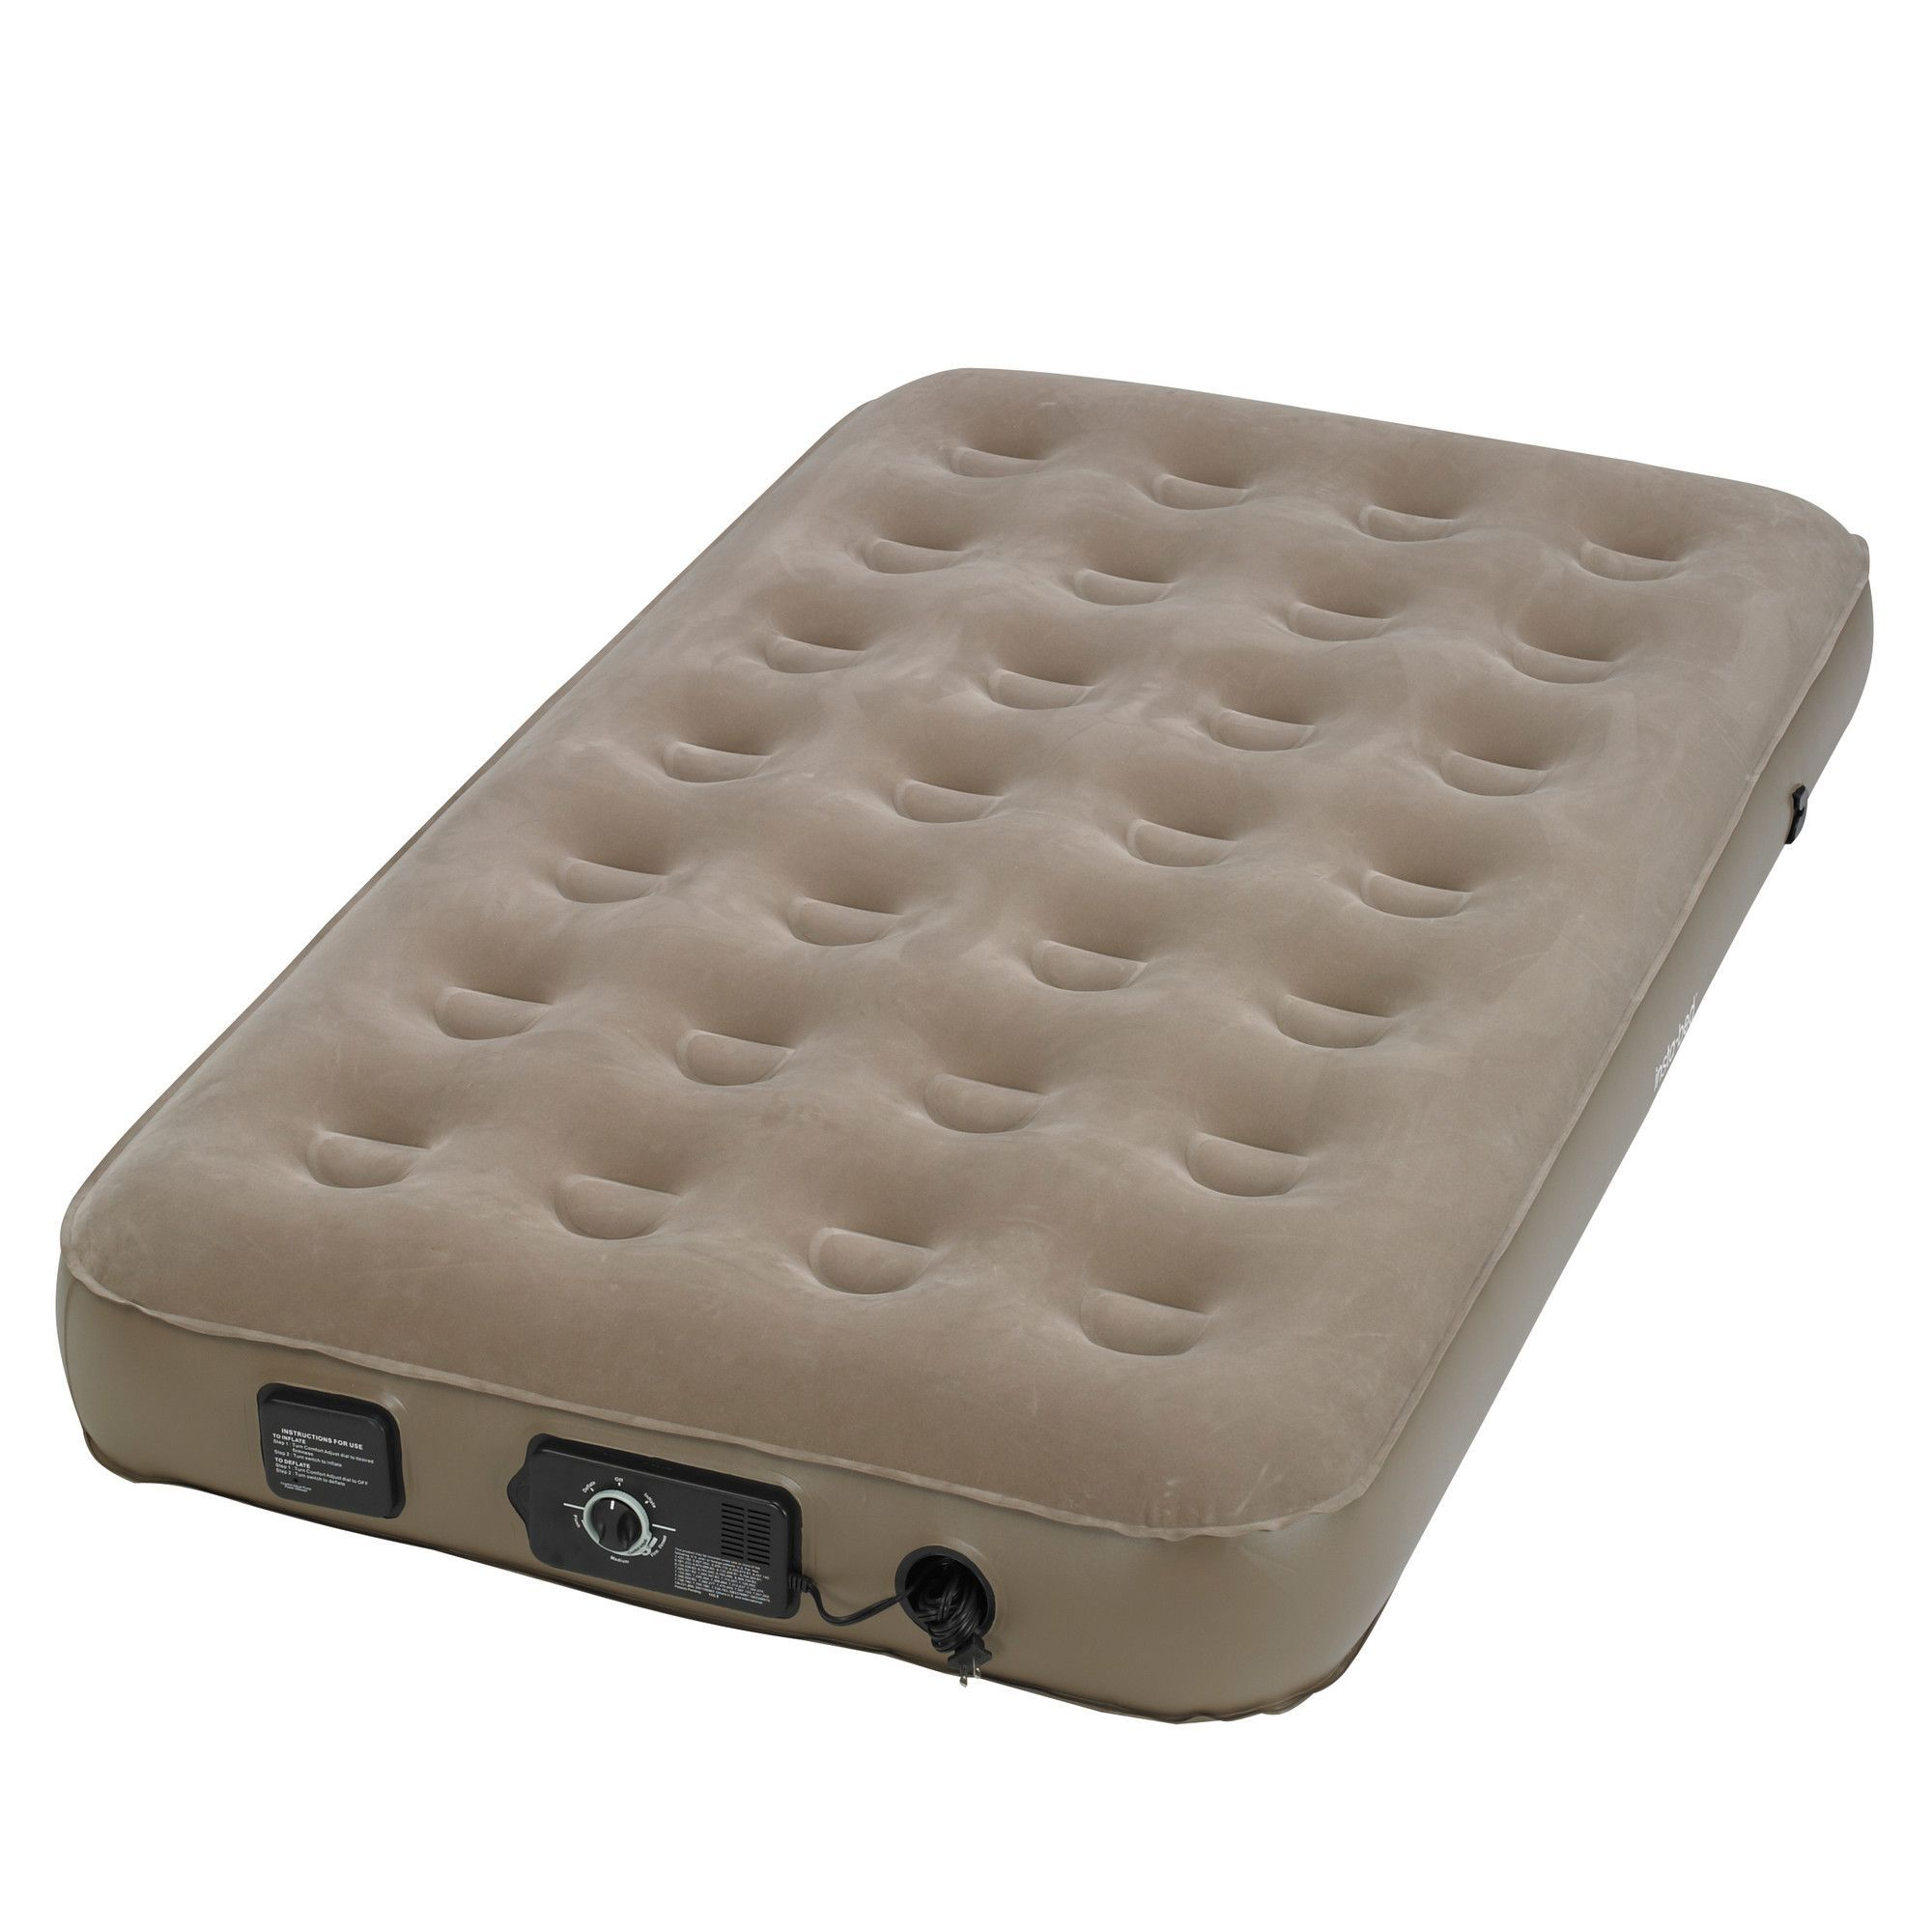 Queen sized air mattress. Not this one. This is just a